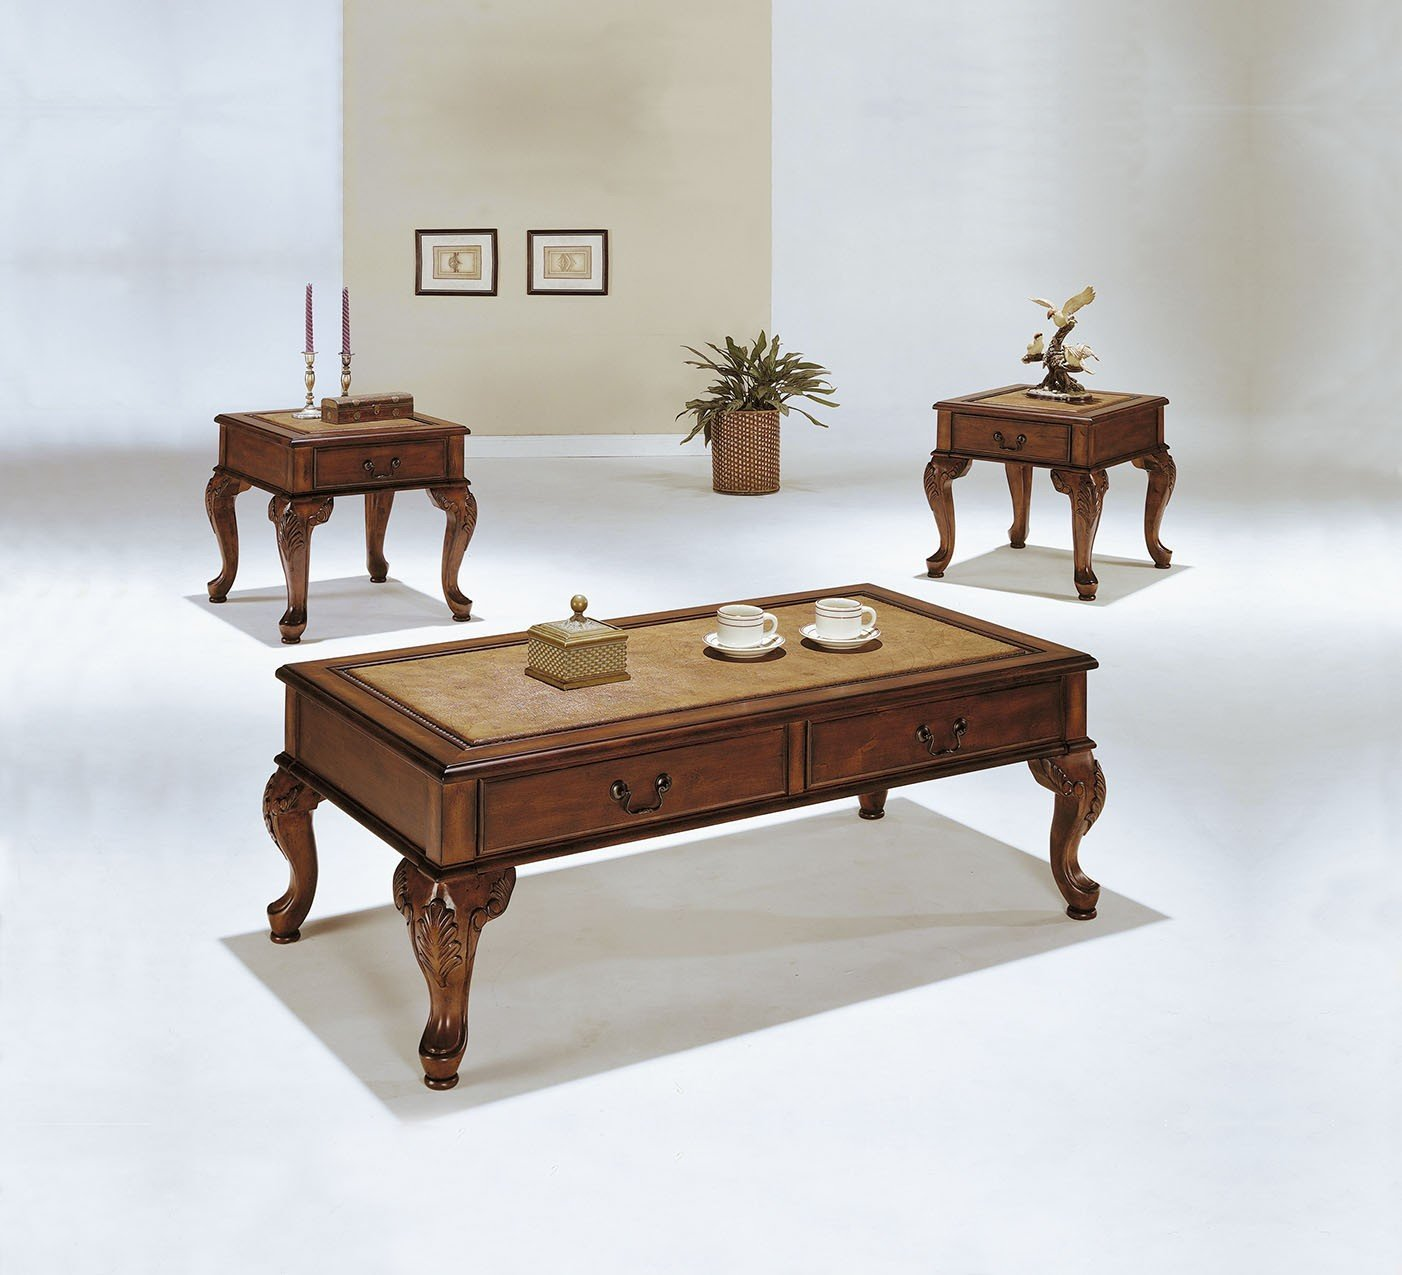 Cheap 4 Drawer Coffee Table find 4 Drawer Coffee Table deals on